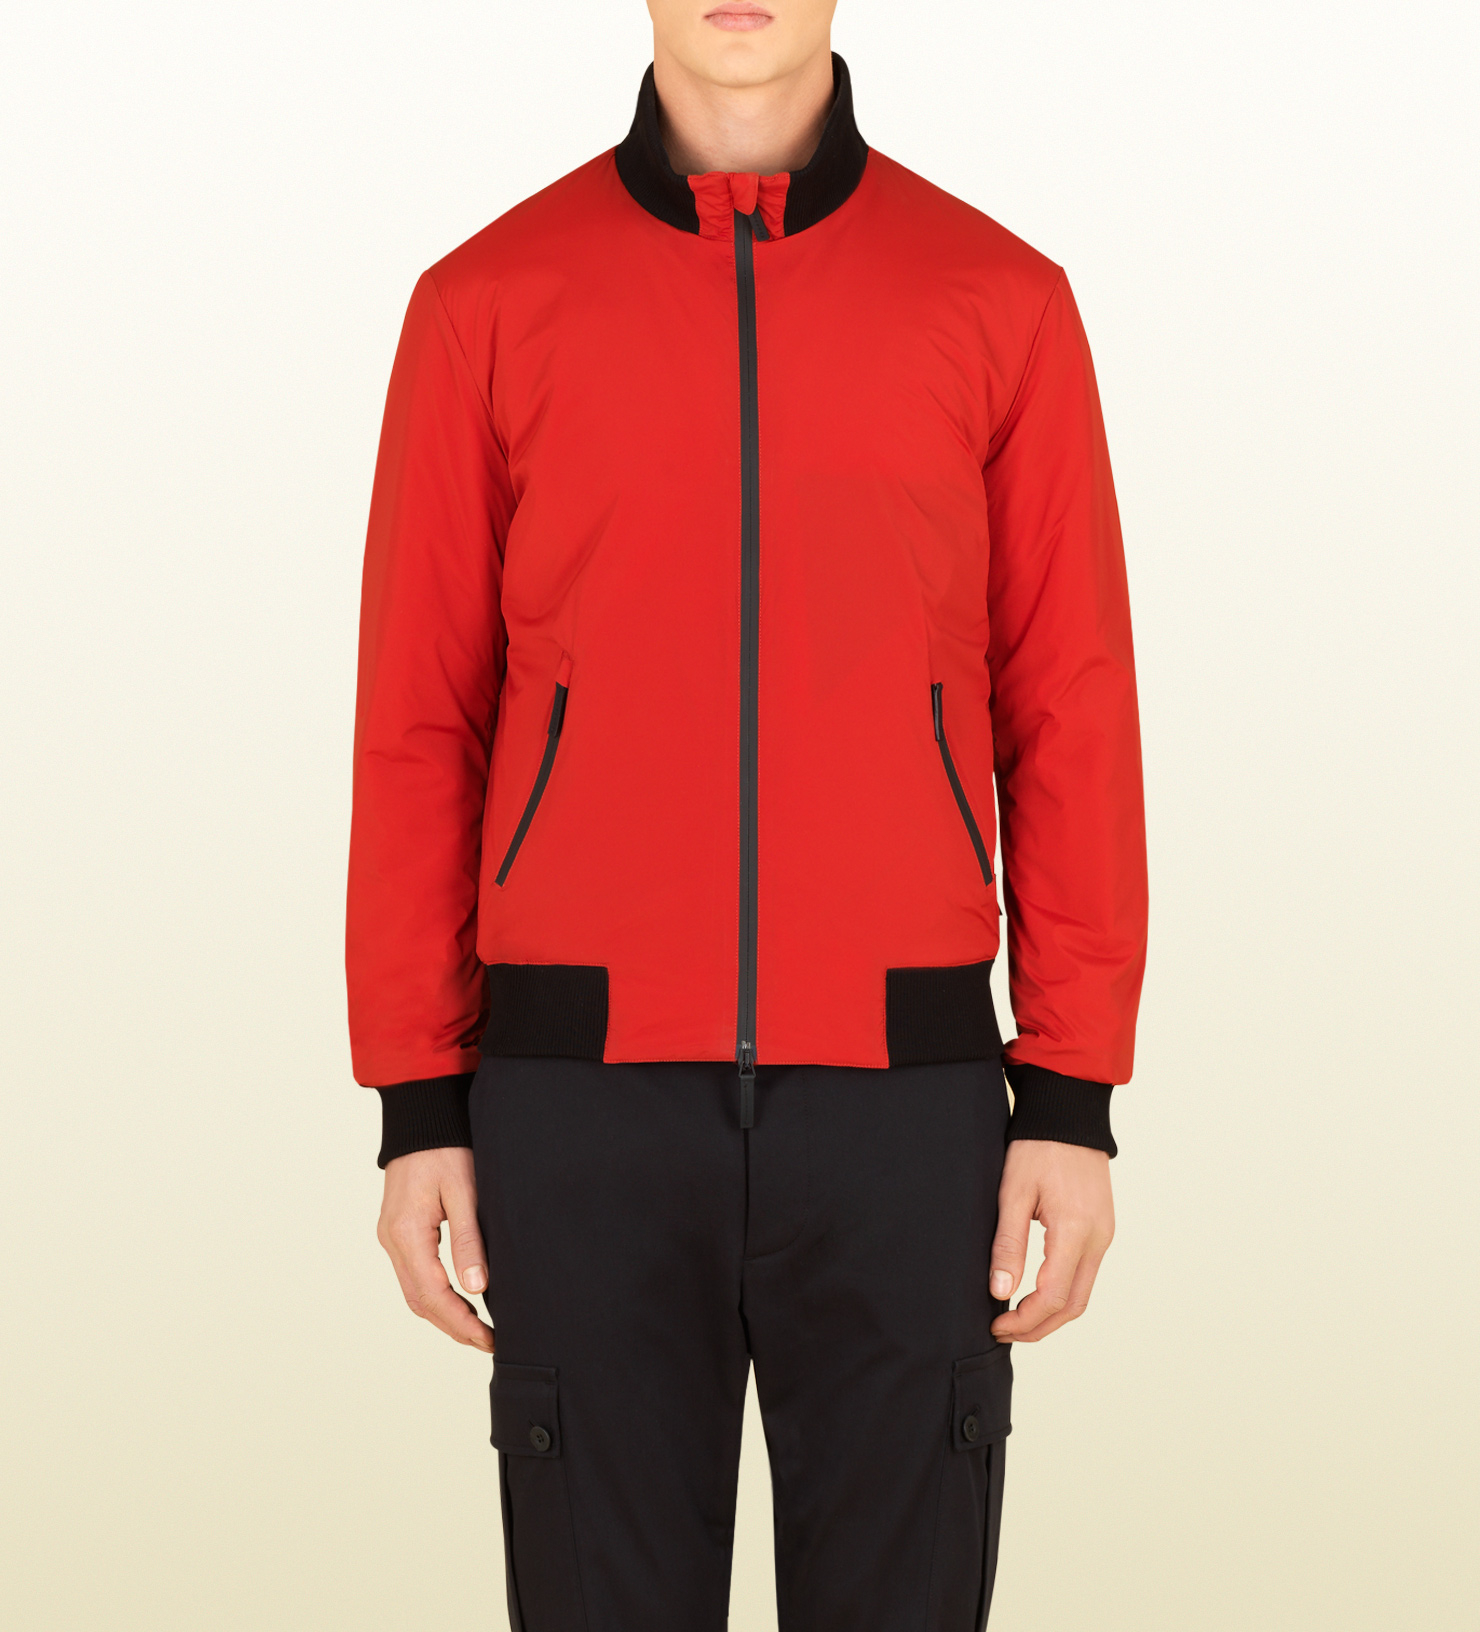 61c32bc9a Gucci Mens Red Nylon Padded Jacket From Viaggio Collection for men